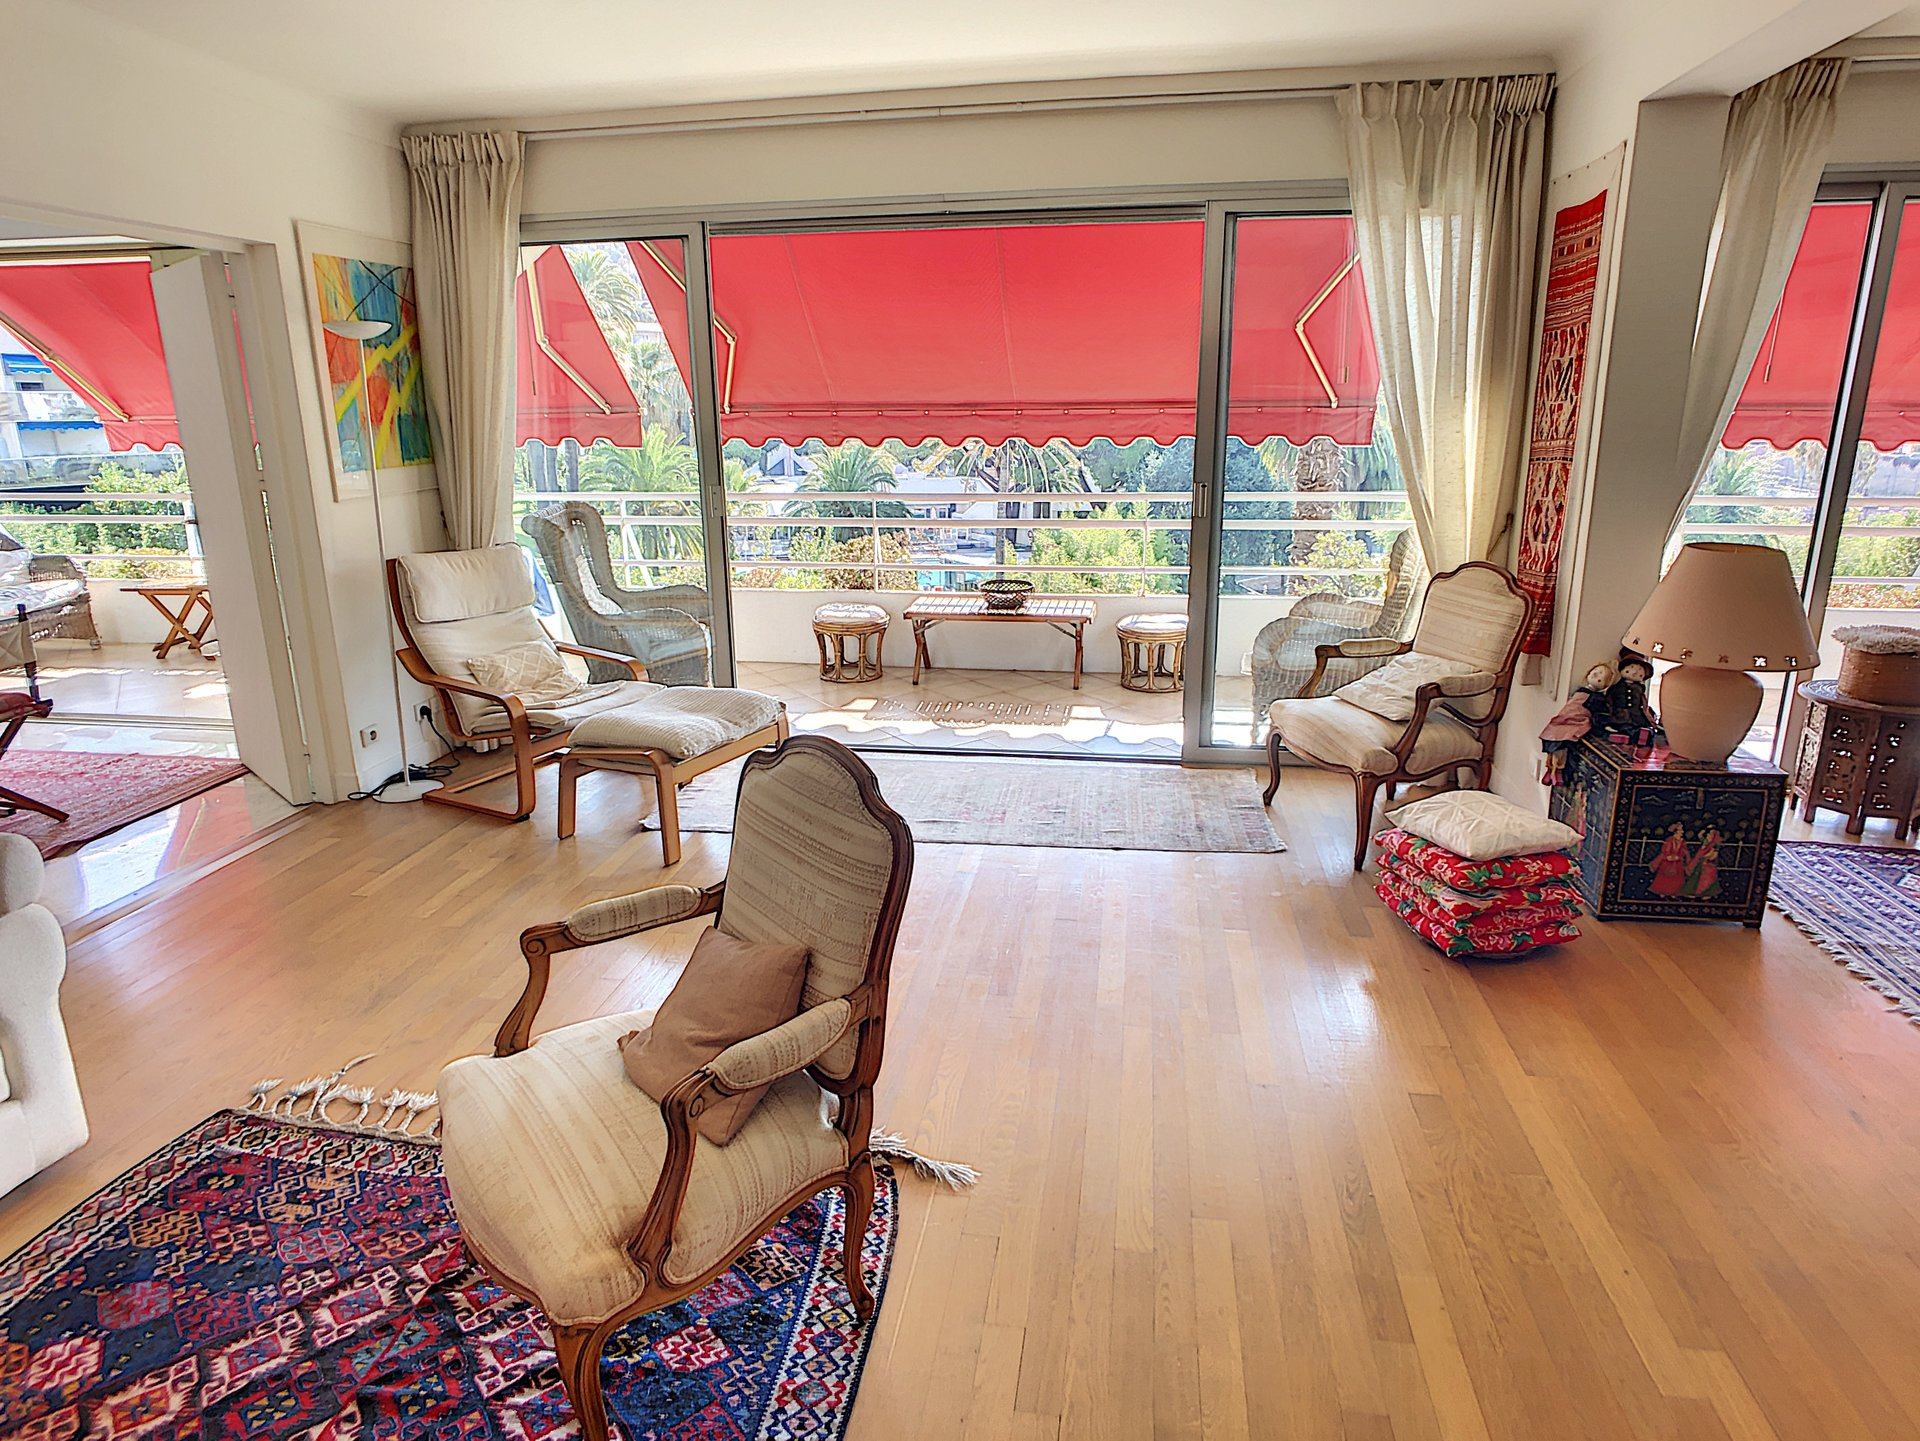 Splendid 2/3 bedroom of 140 Sqm with 32 Sqm of terrace